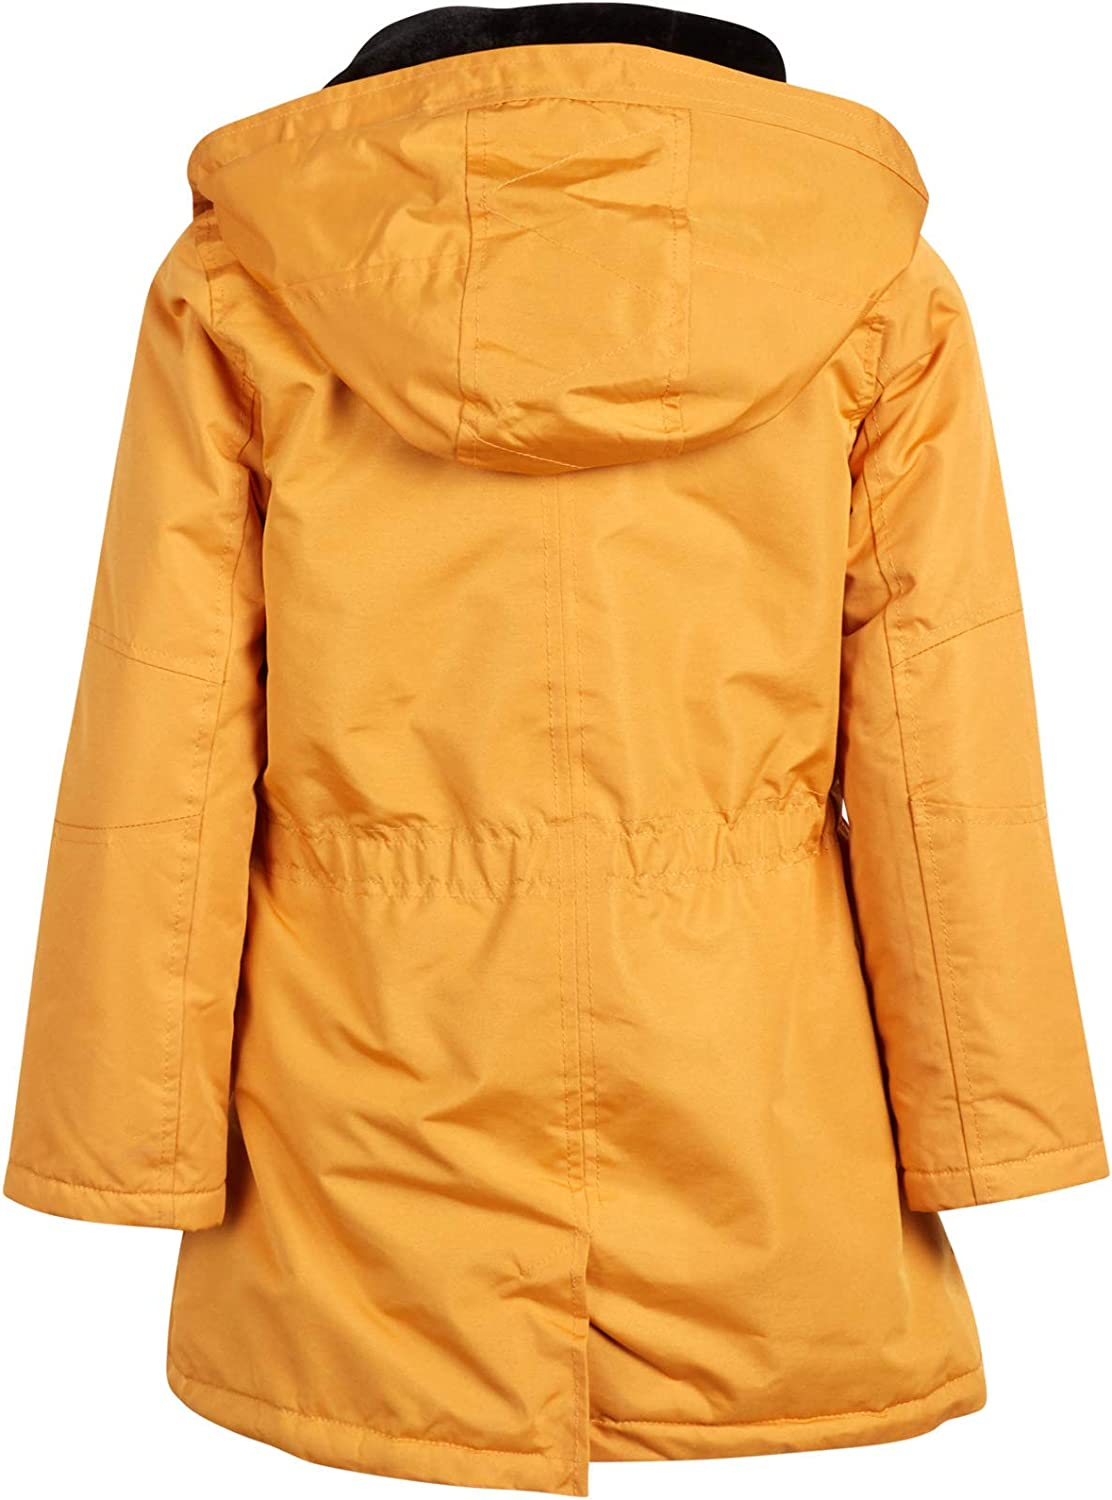 Sherpa Fur Lined Heavyweight Parka Jacket with Removable Hood URBAN REPUBLIC Girls/' Winter Coat